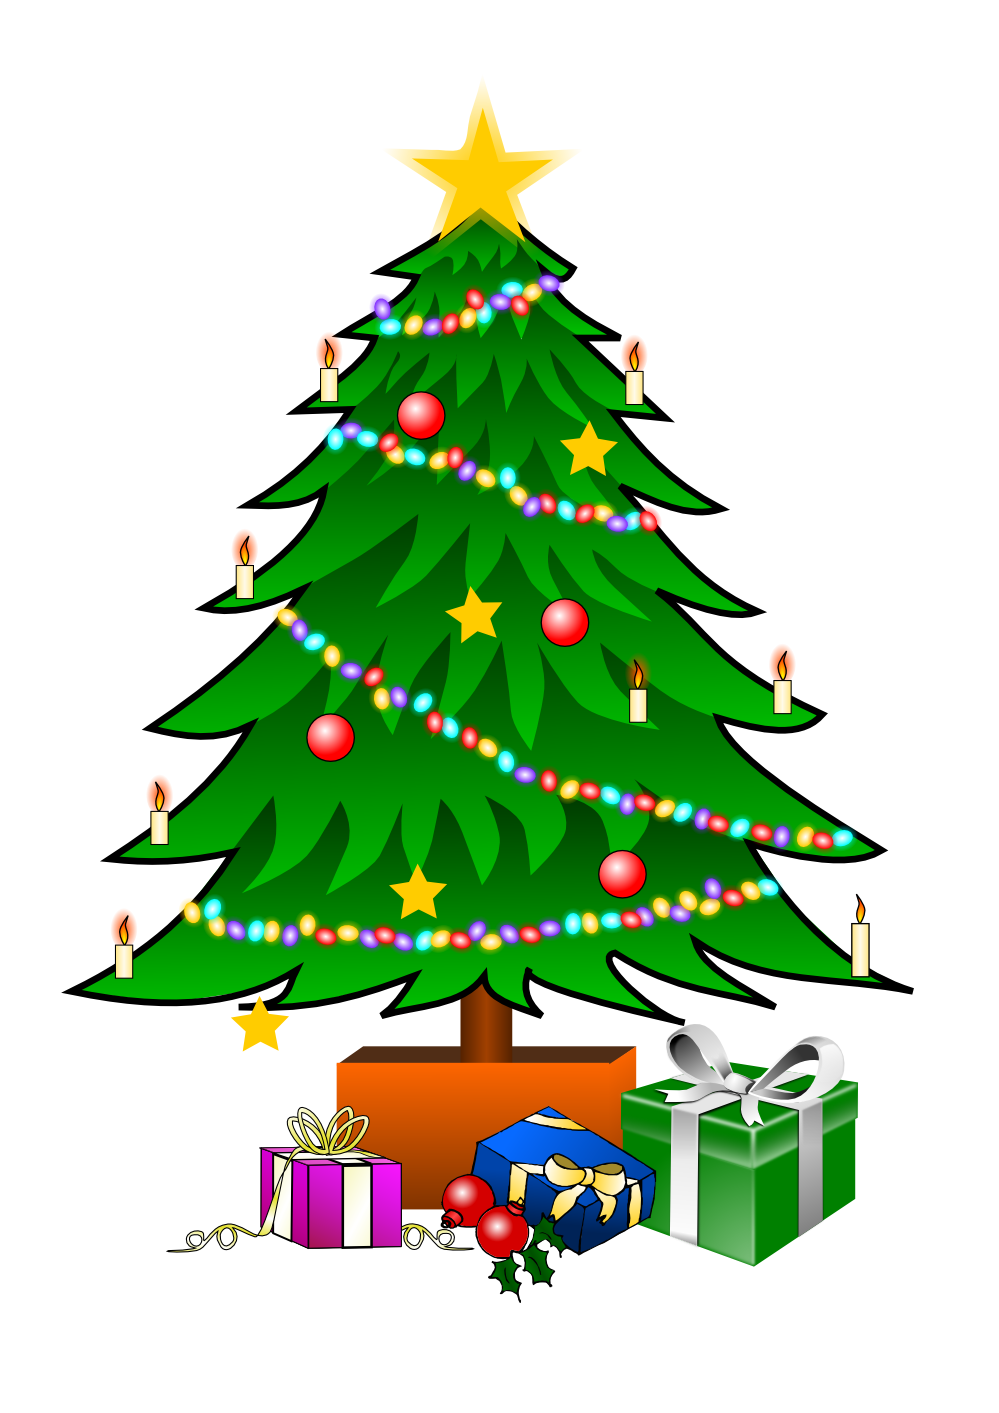 Chrismas tree clipart vector free This nice Christmas tree with presents clip art can be used for ... vector free